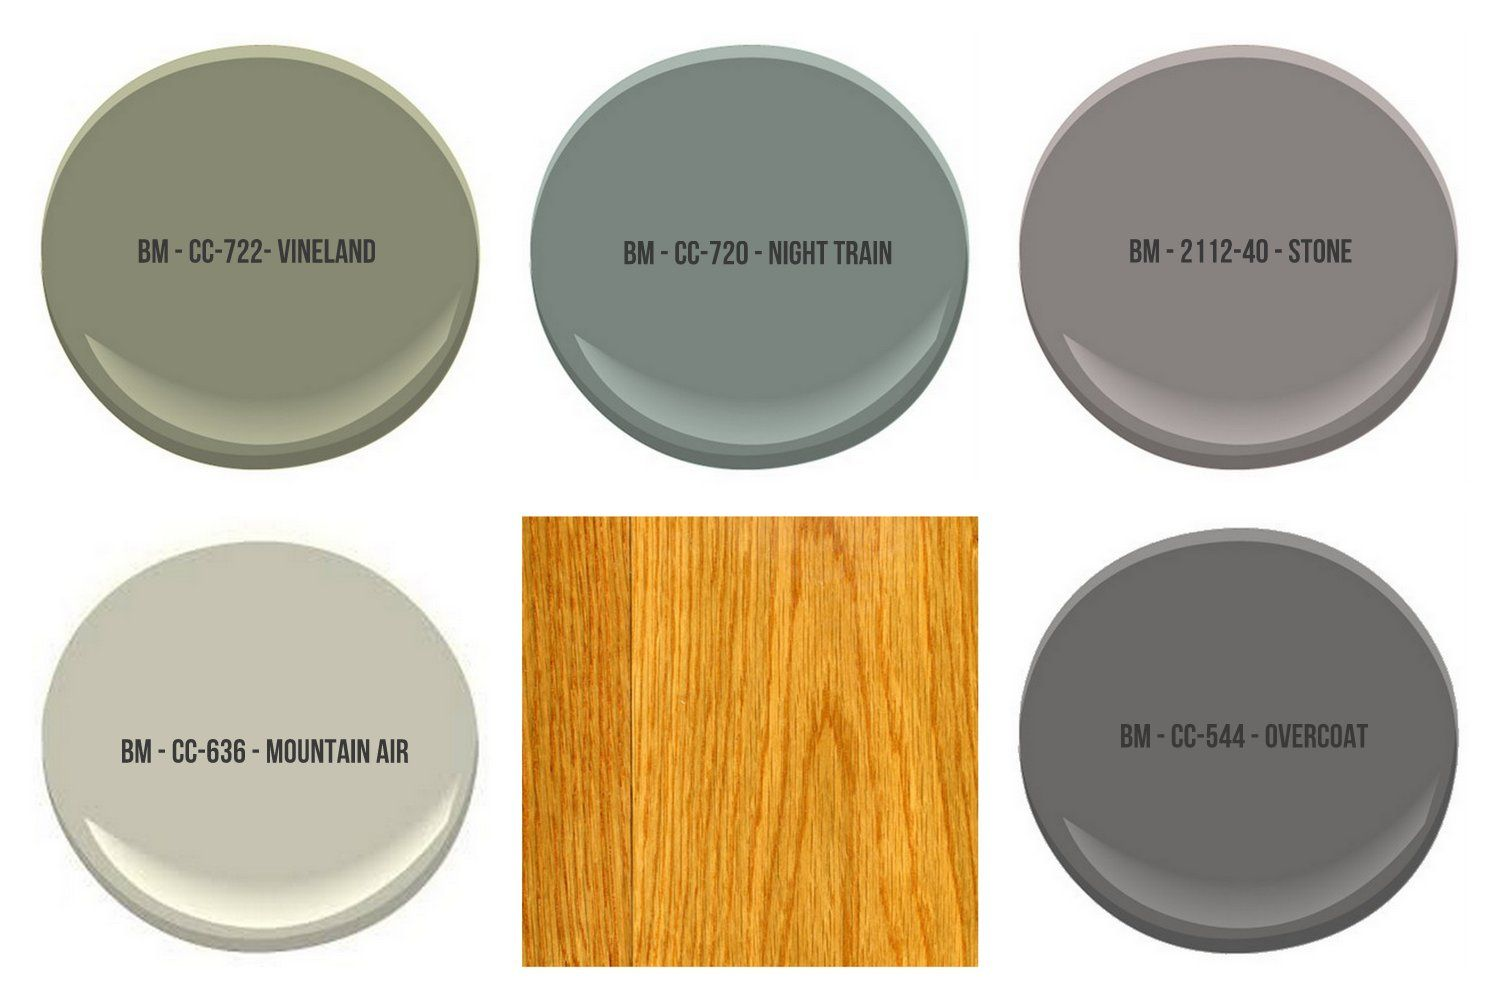 The Best Wall Paint Colors To Go With Honey Oak Dream